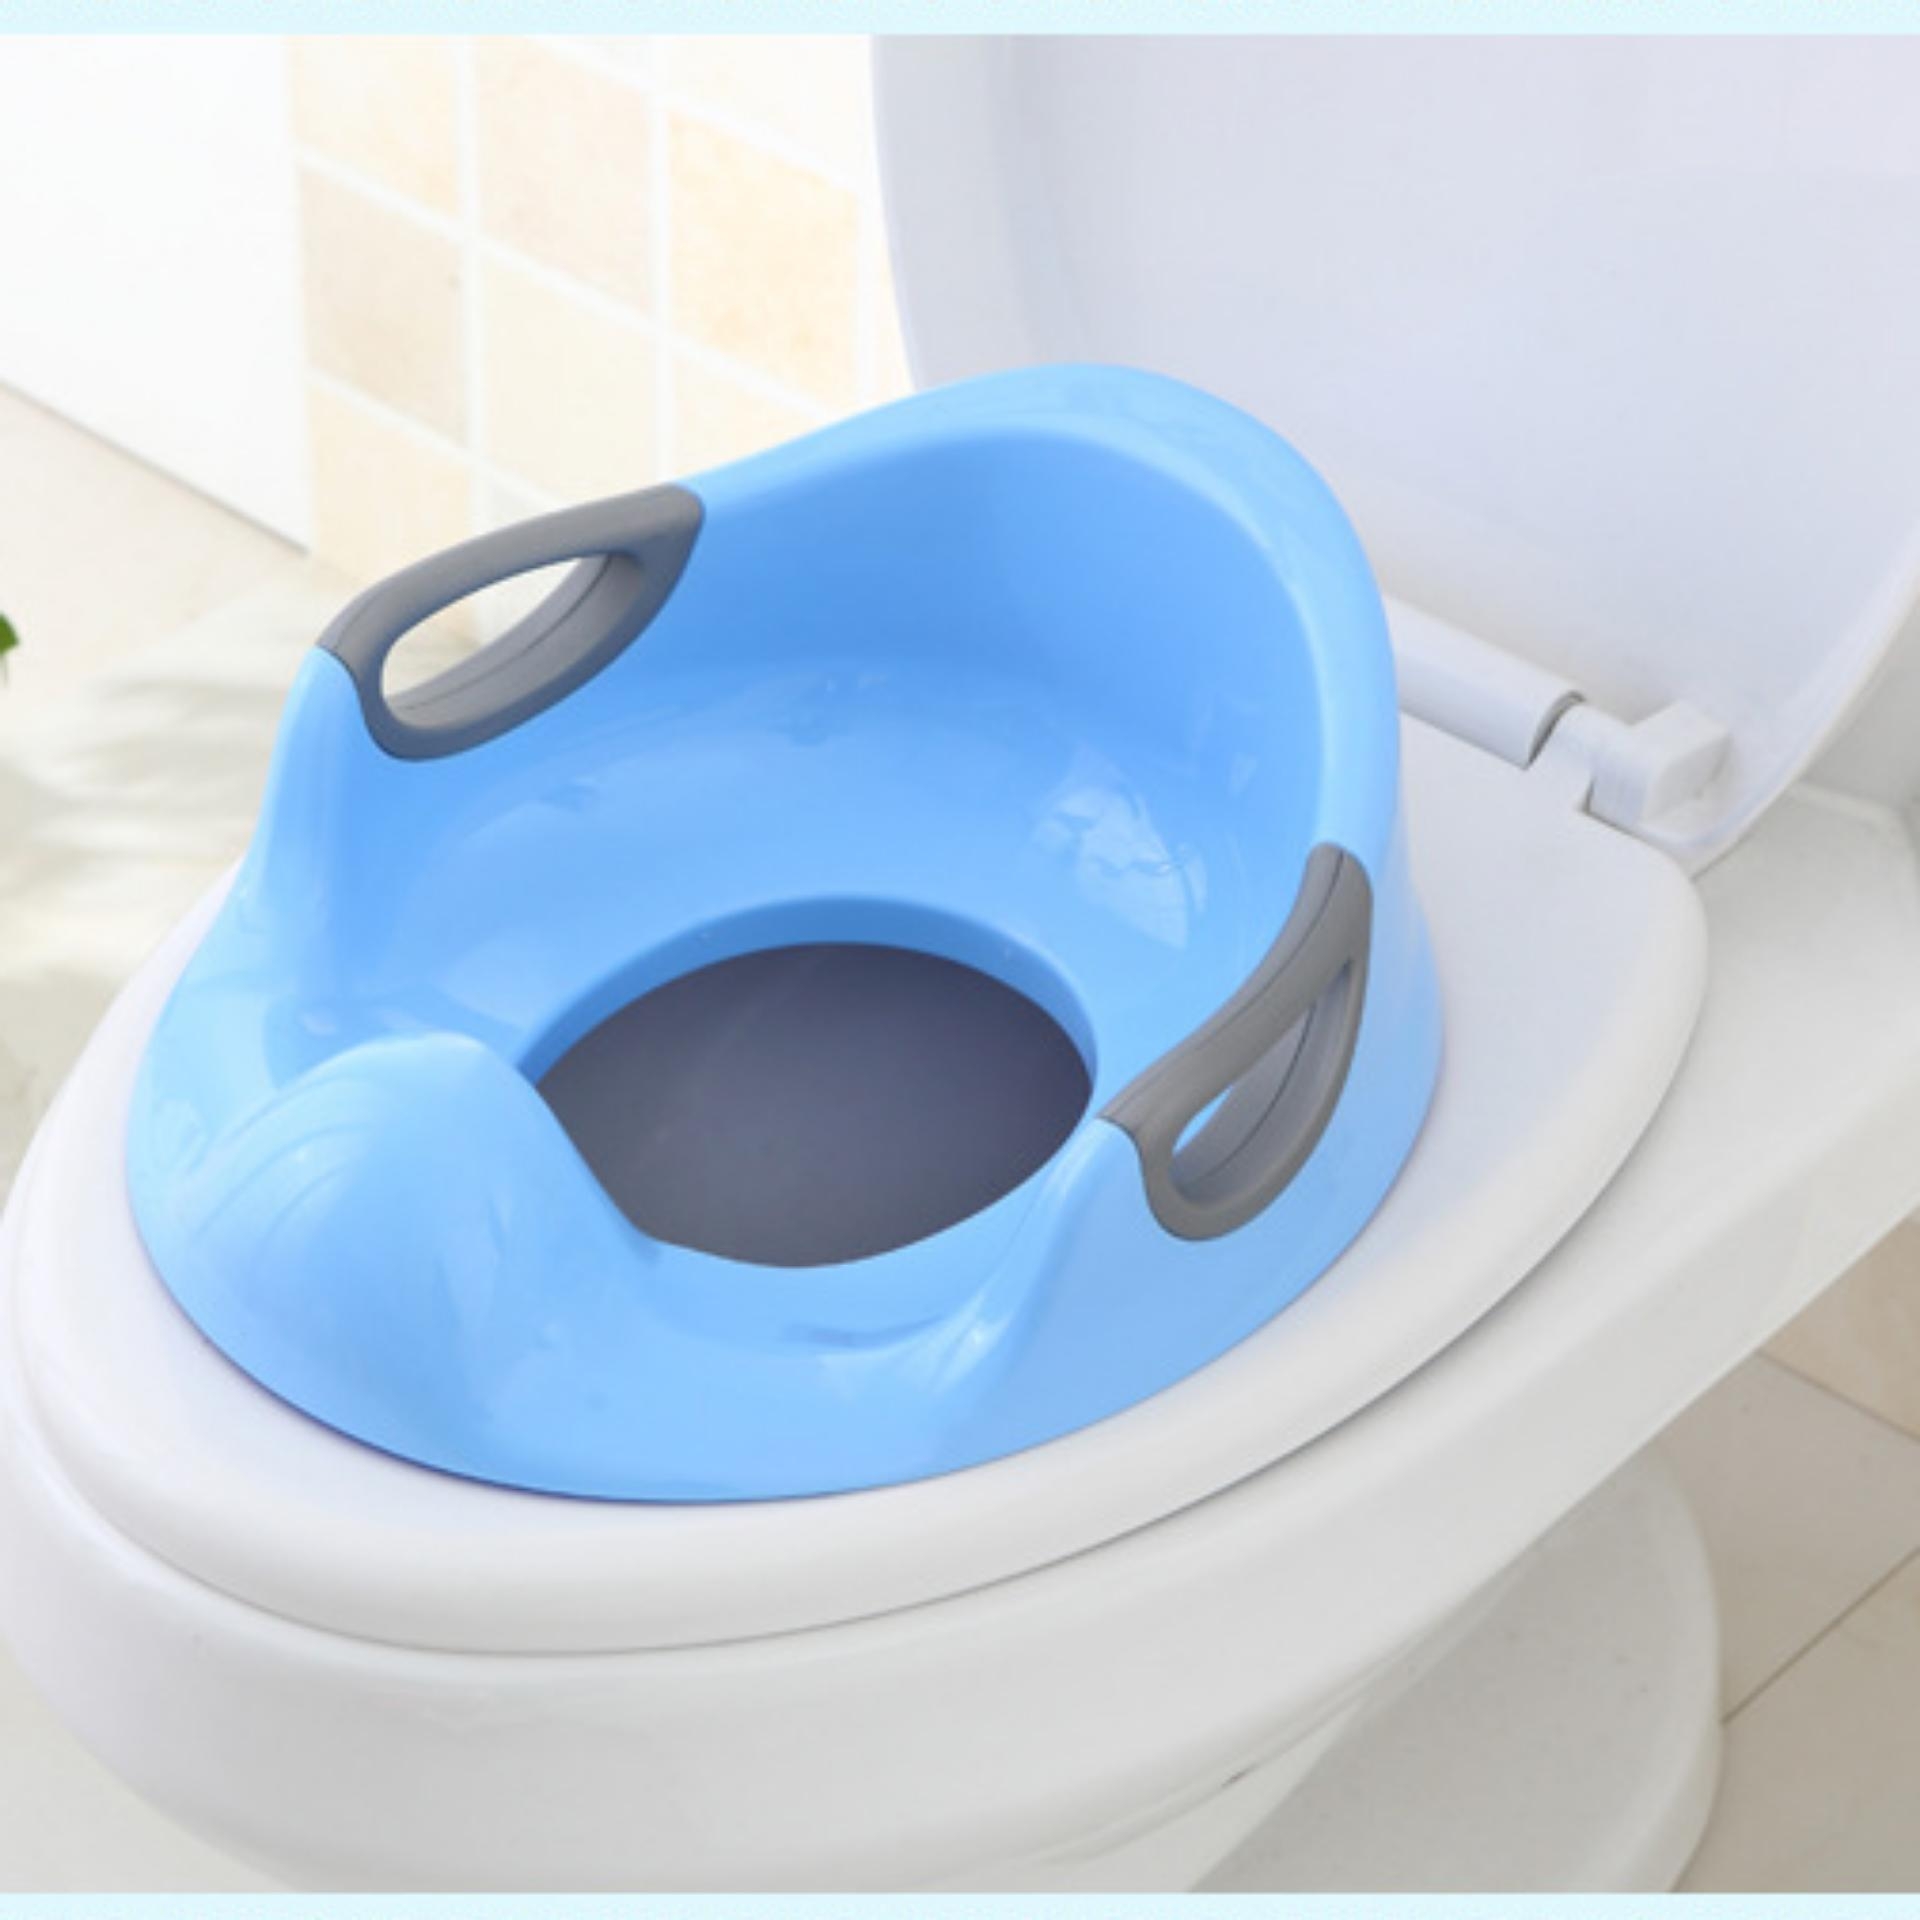 Fengsheng Kids Toilet Seat Soft Cushion Seat with Handles Cute Patterns Plastic Toilet Cover for Children